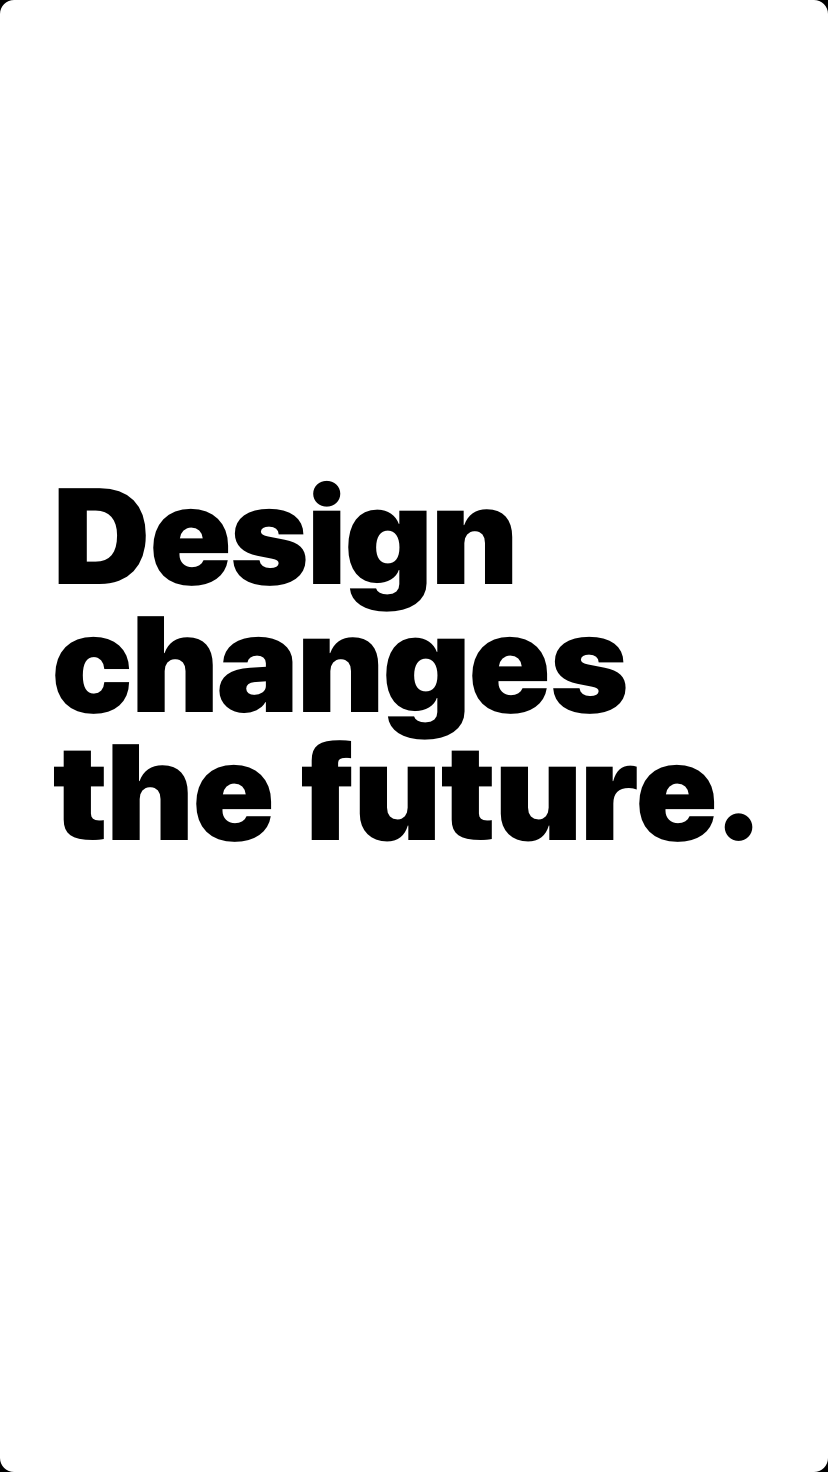 Design changes the future.